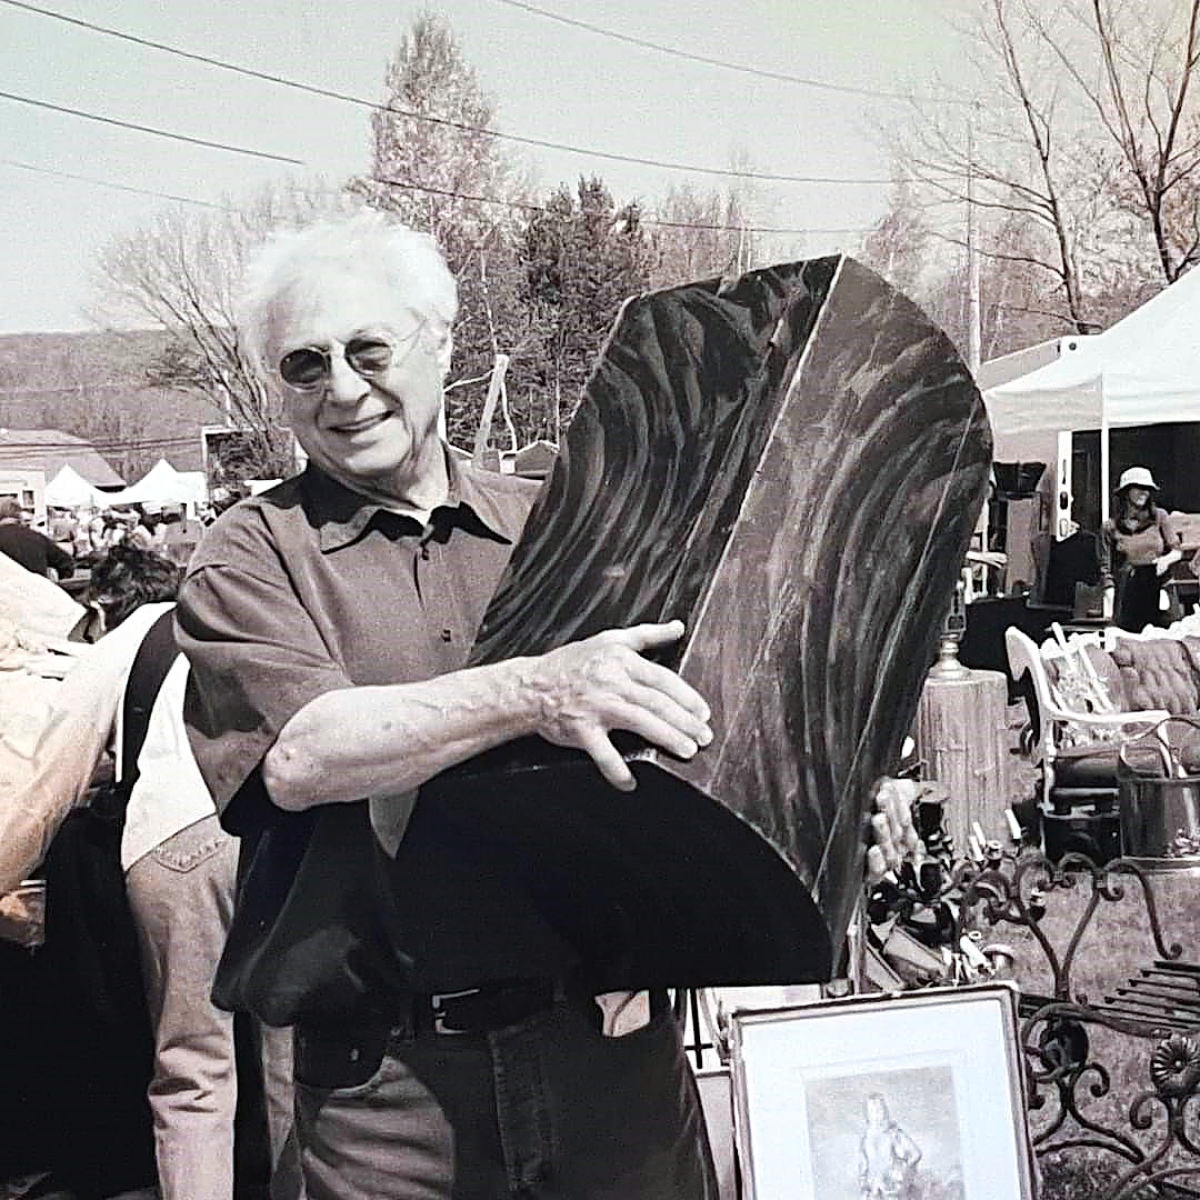 Keno is seen here in an undated photo at the Brimfield Flea Market with a boldly painted pine domed first trunk.